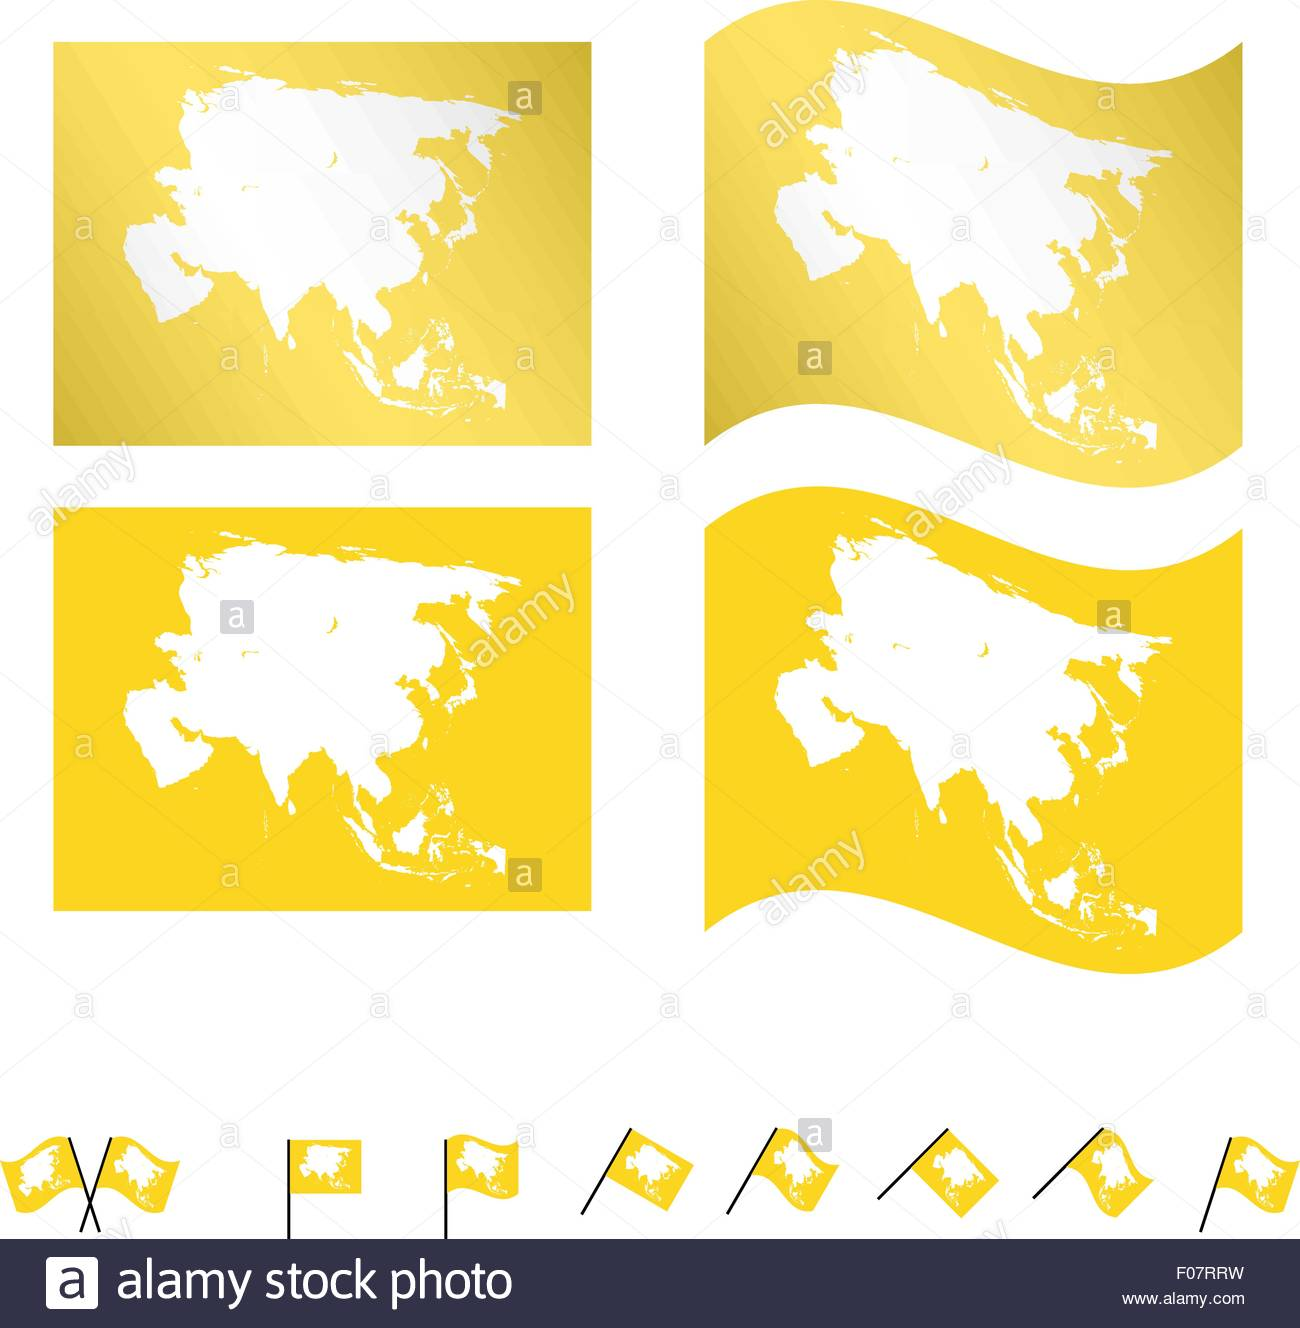 Flags with Asian Map EPS 10 - Stock Image